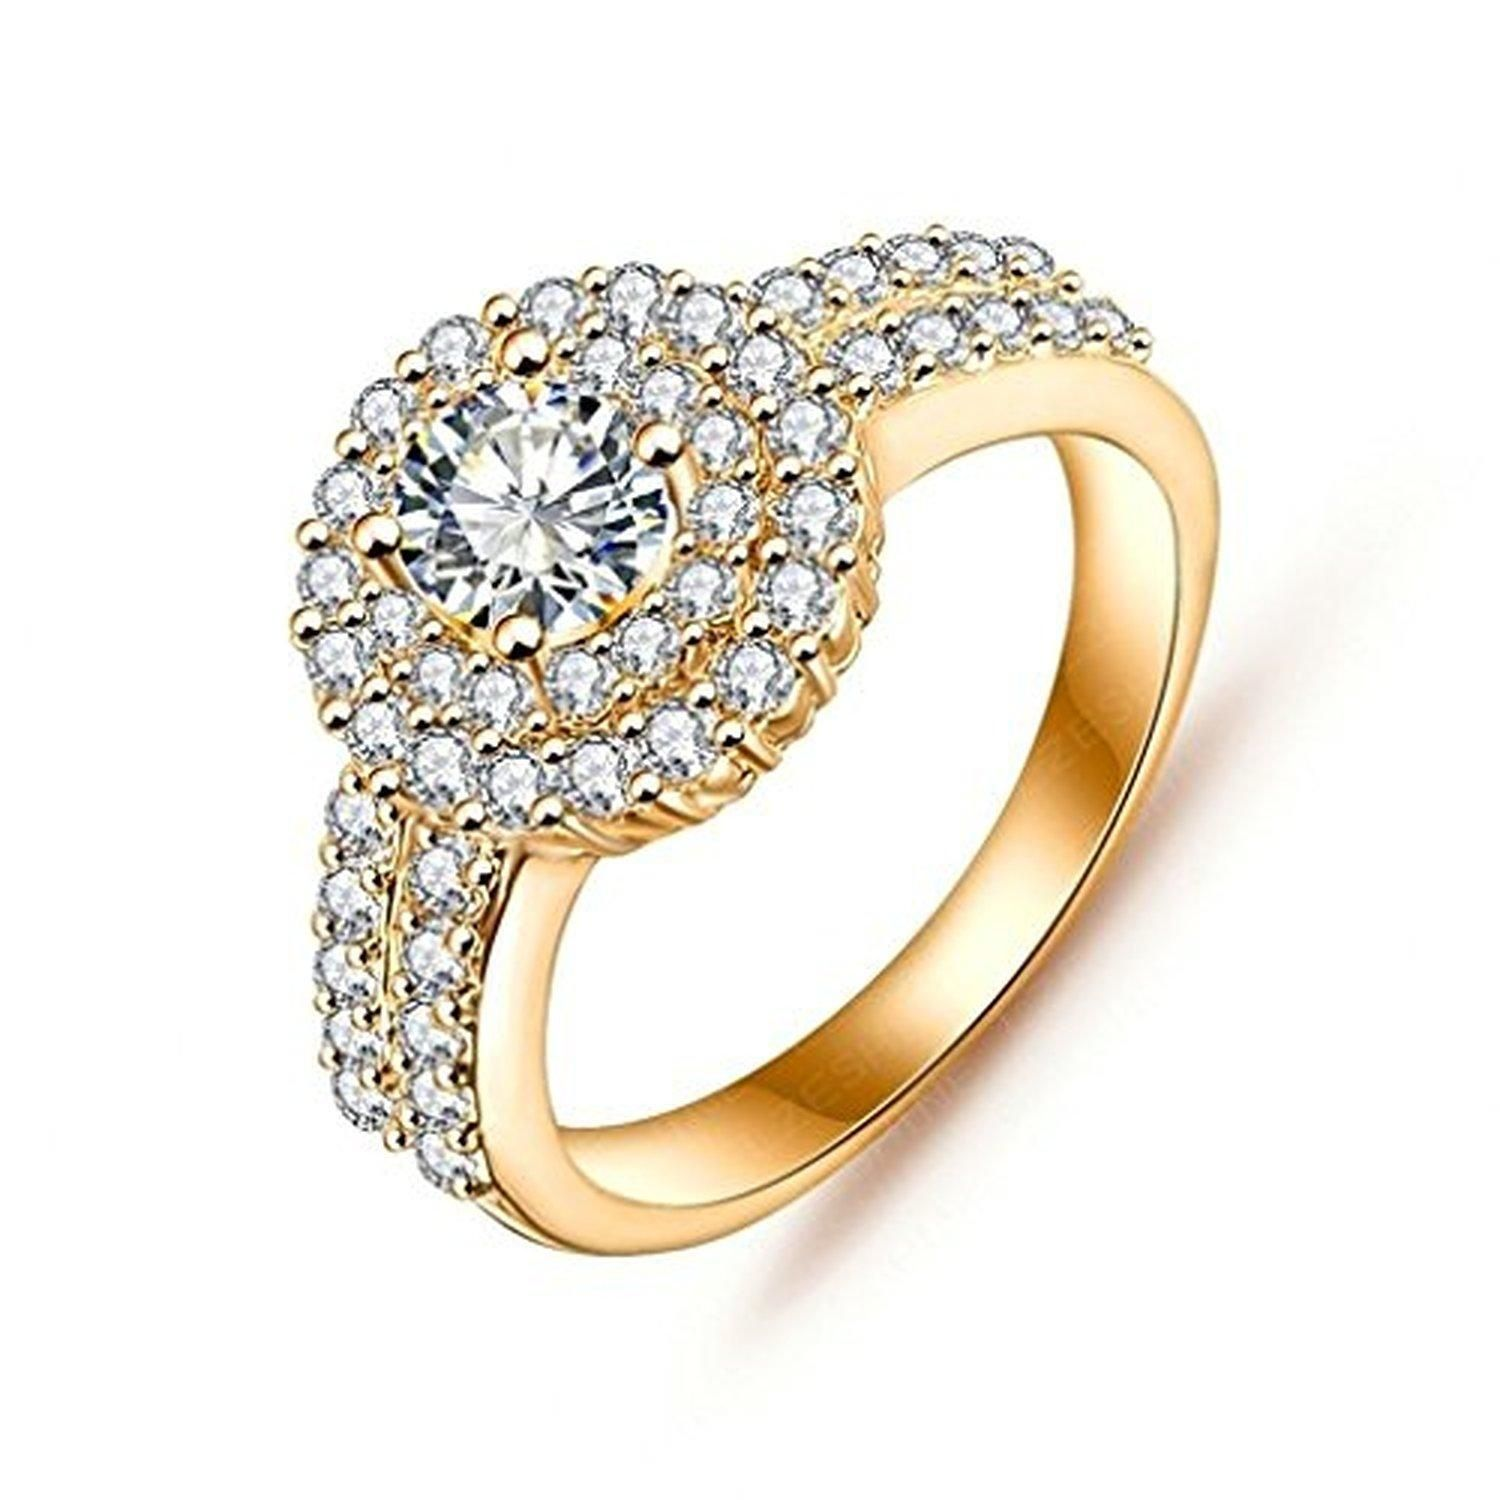 of rings best jewellery for under cheap engagement her